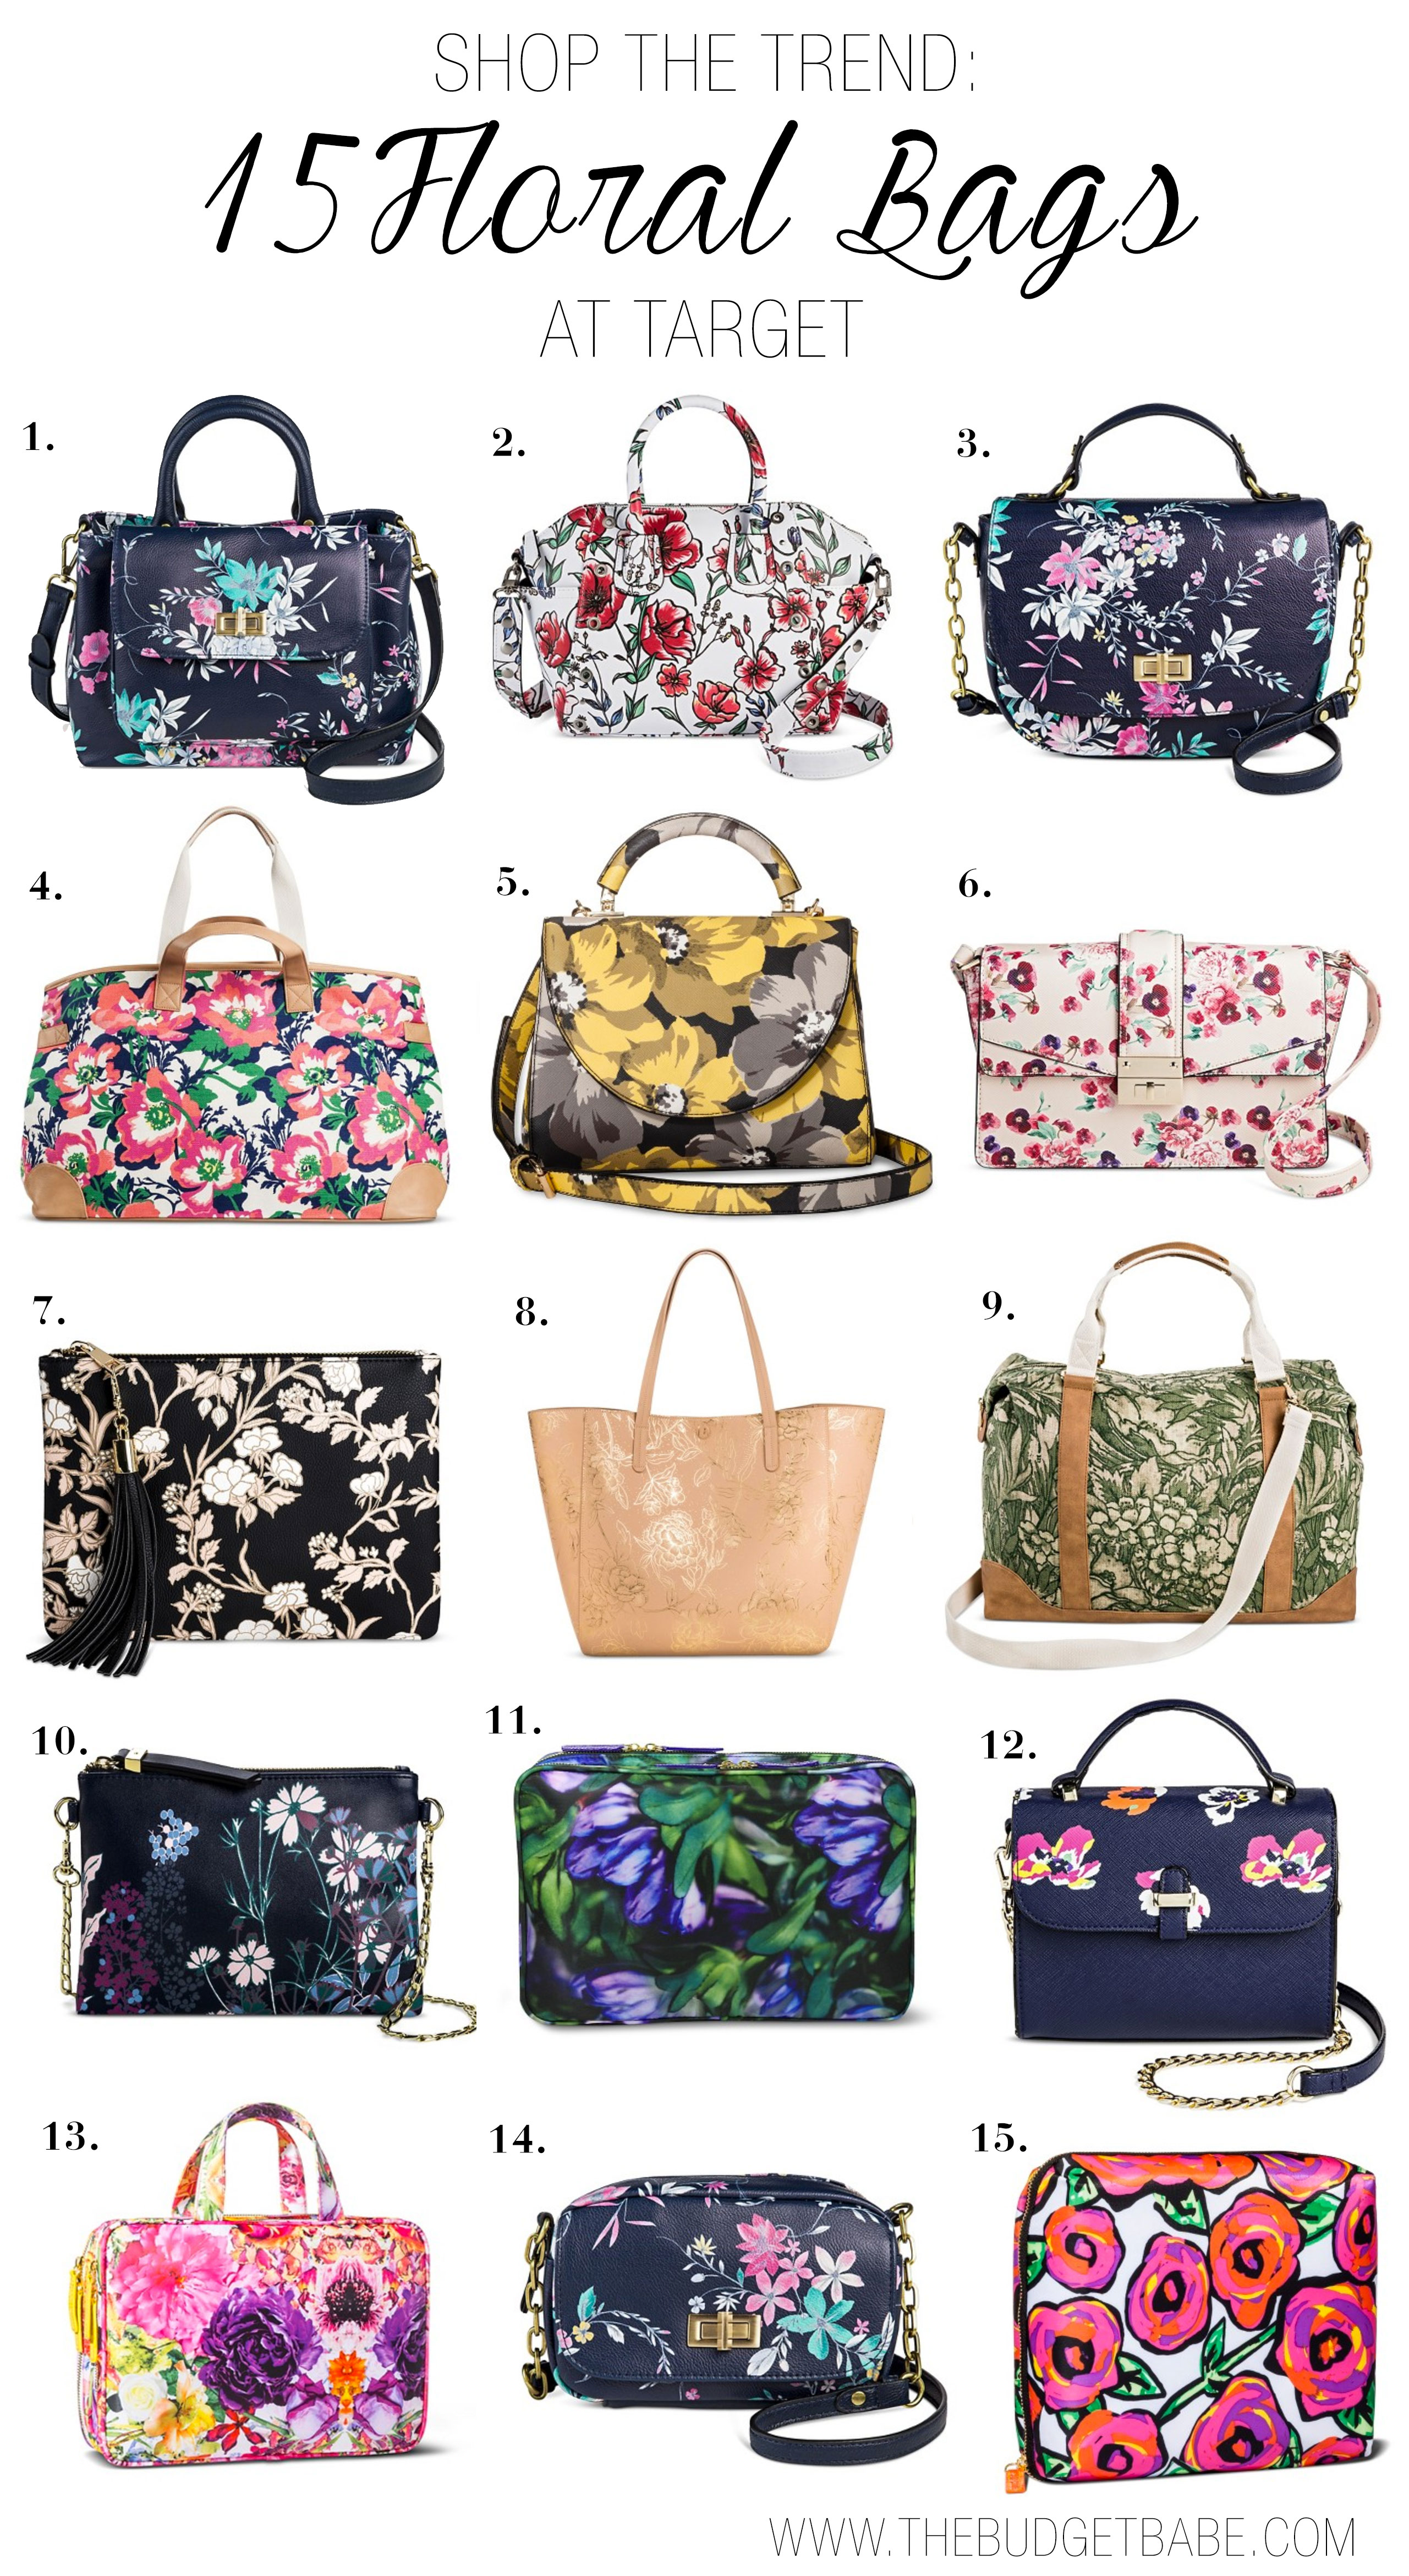 Shop the floral bag trend with these budget-friendly picks under $45 at Target.